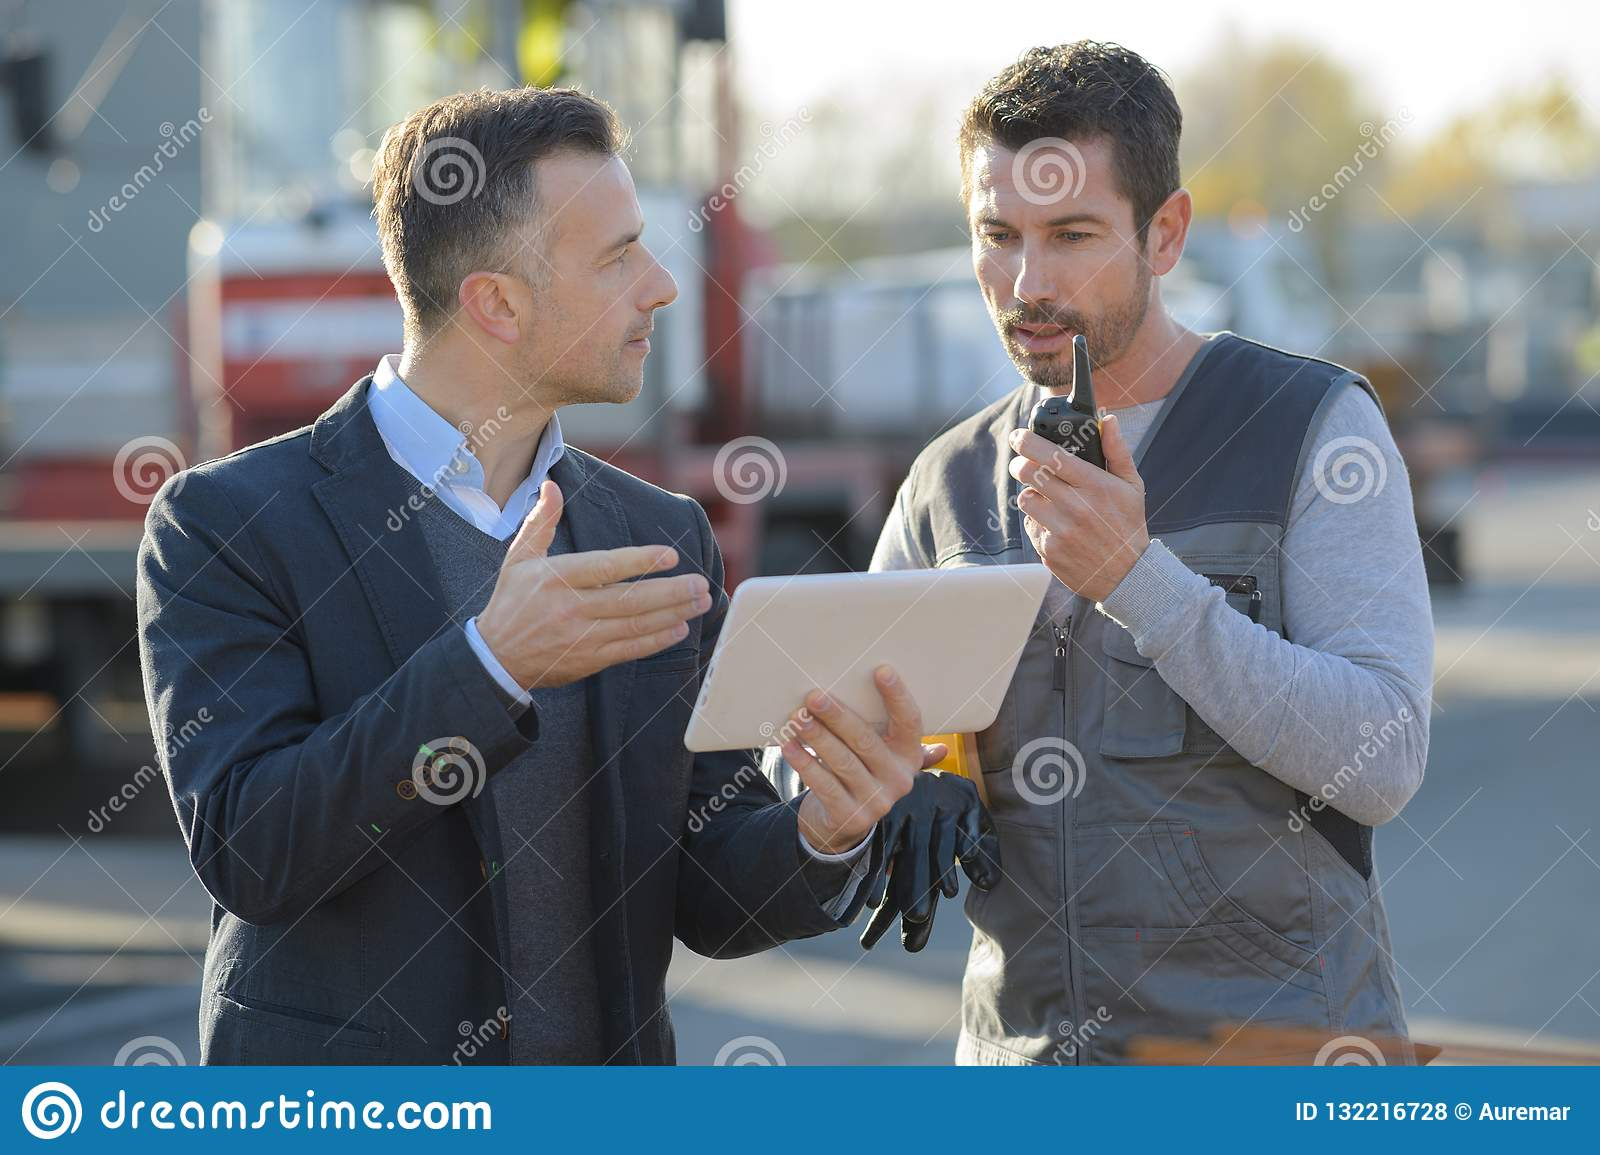 Businessman with digital tablet talking to worker outdoors